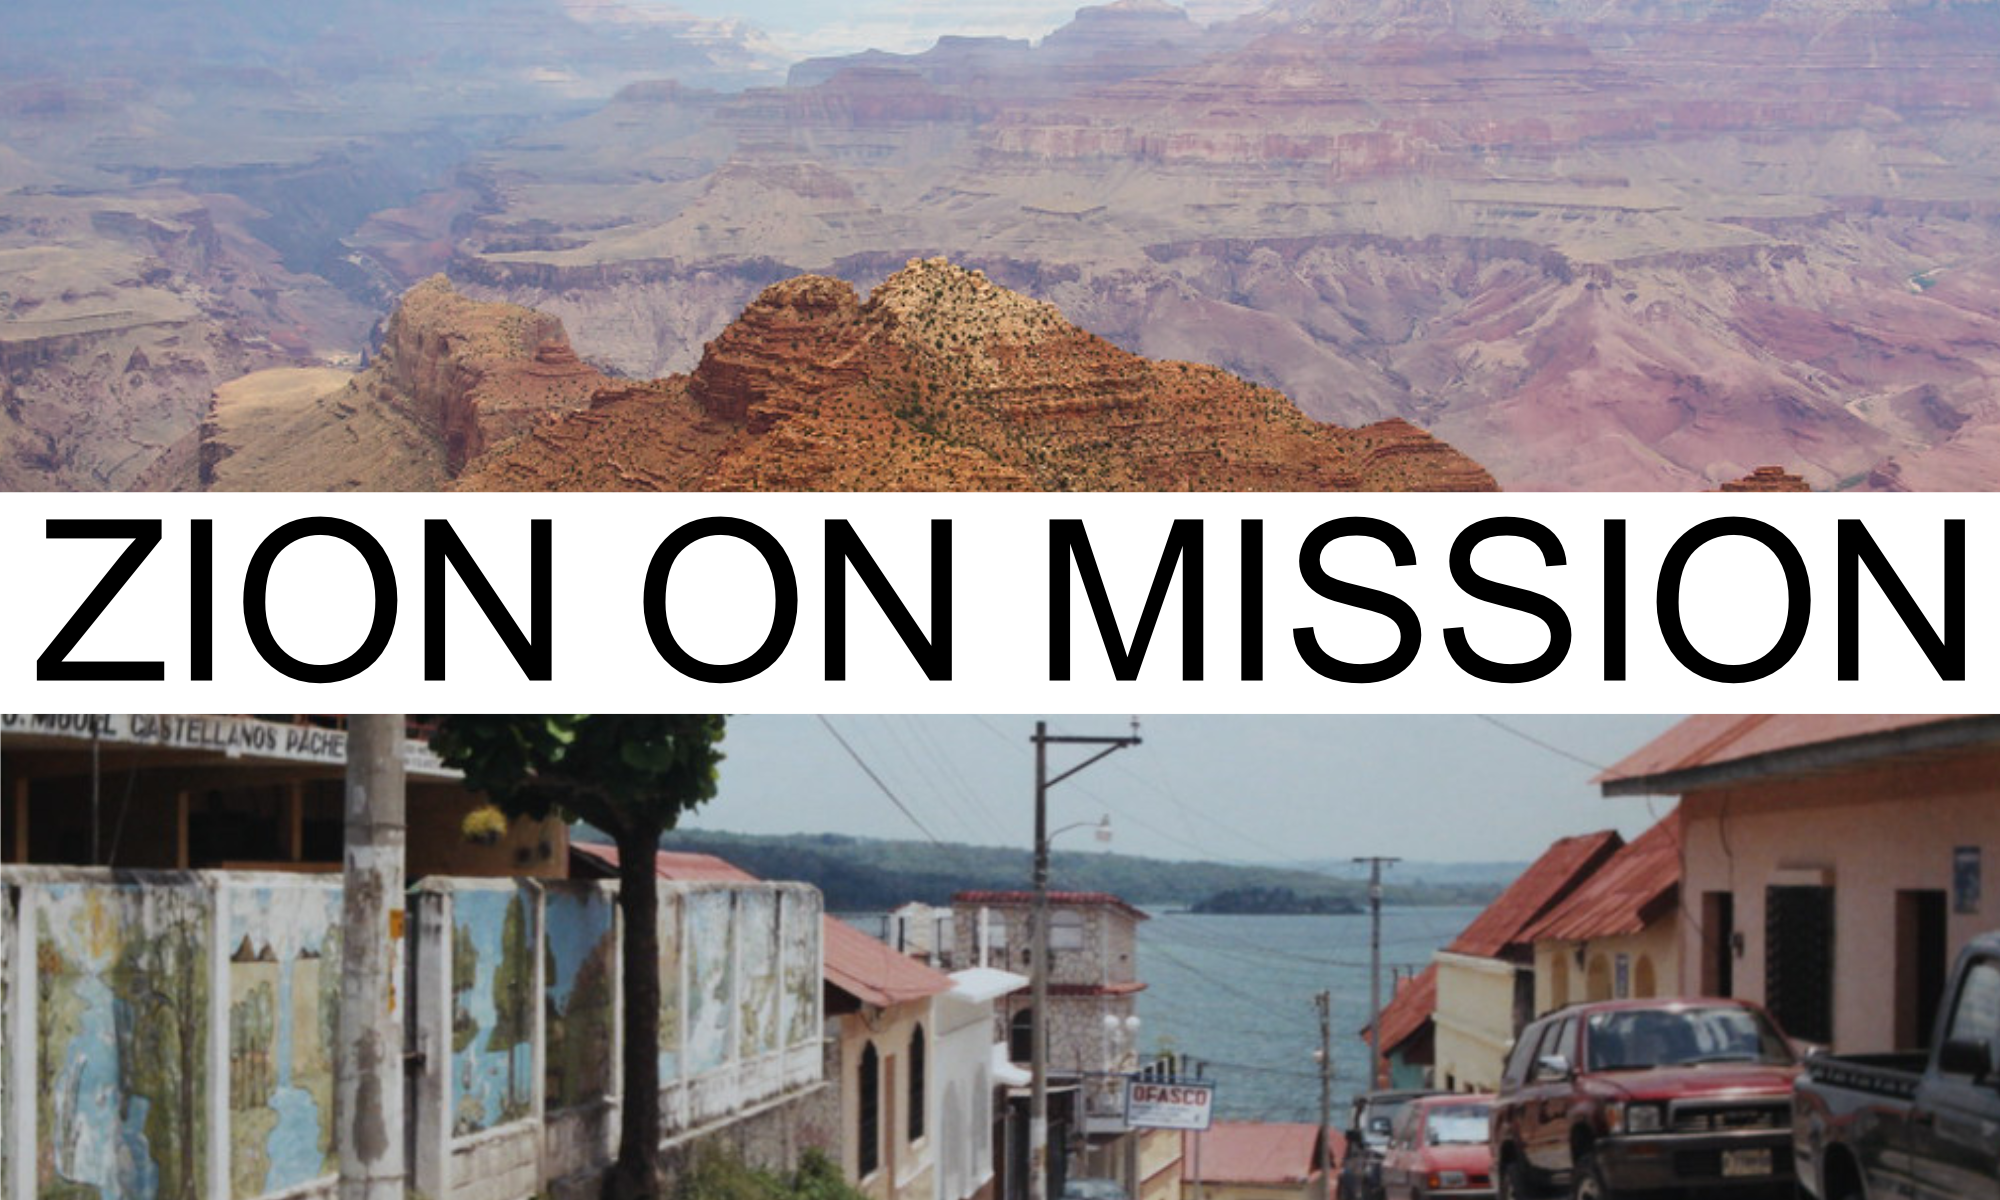 Zion Mission Trip Blog